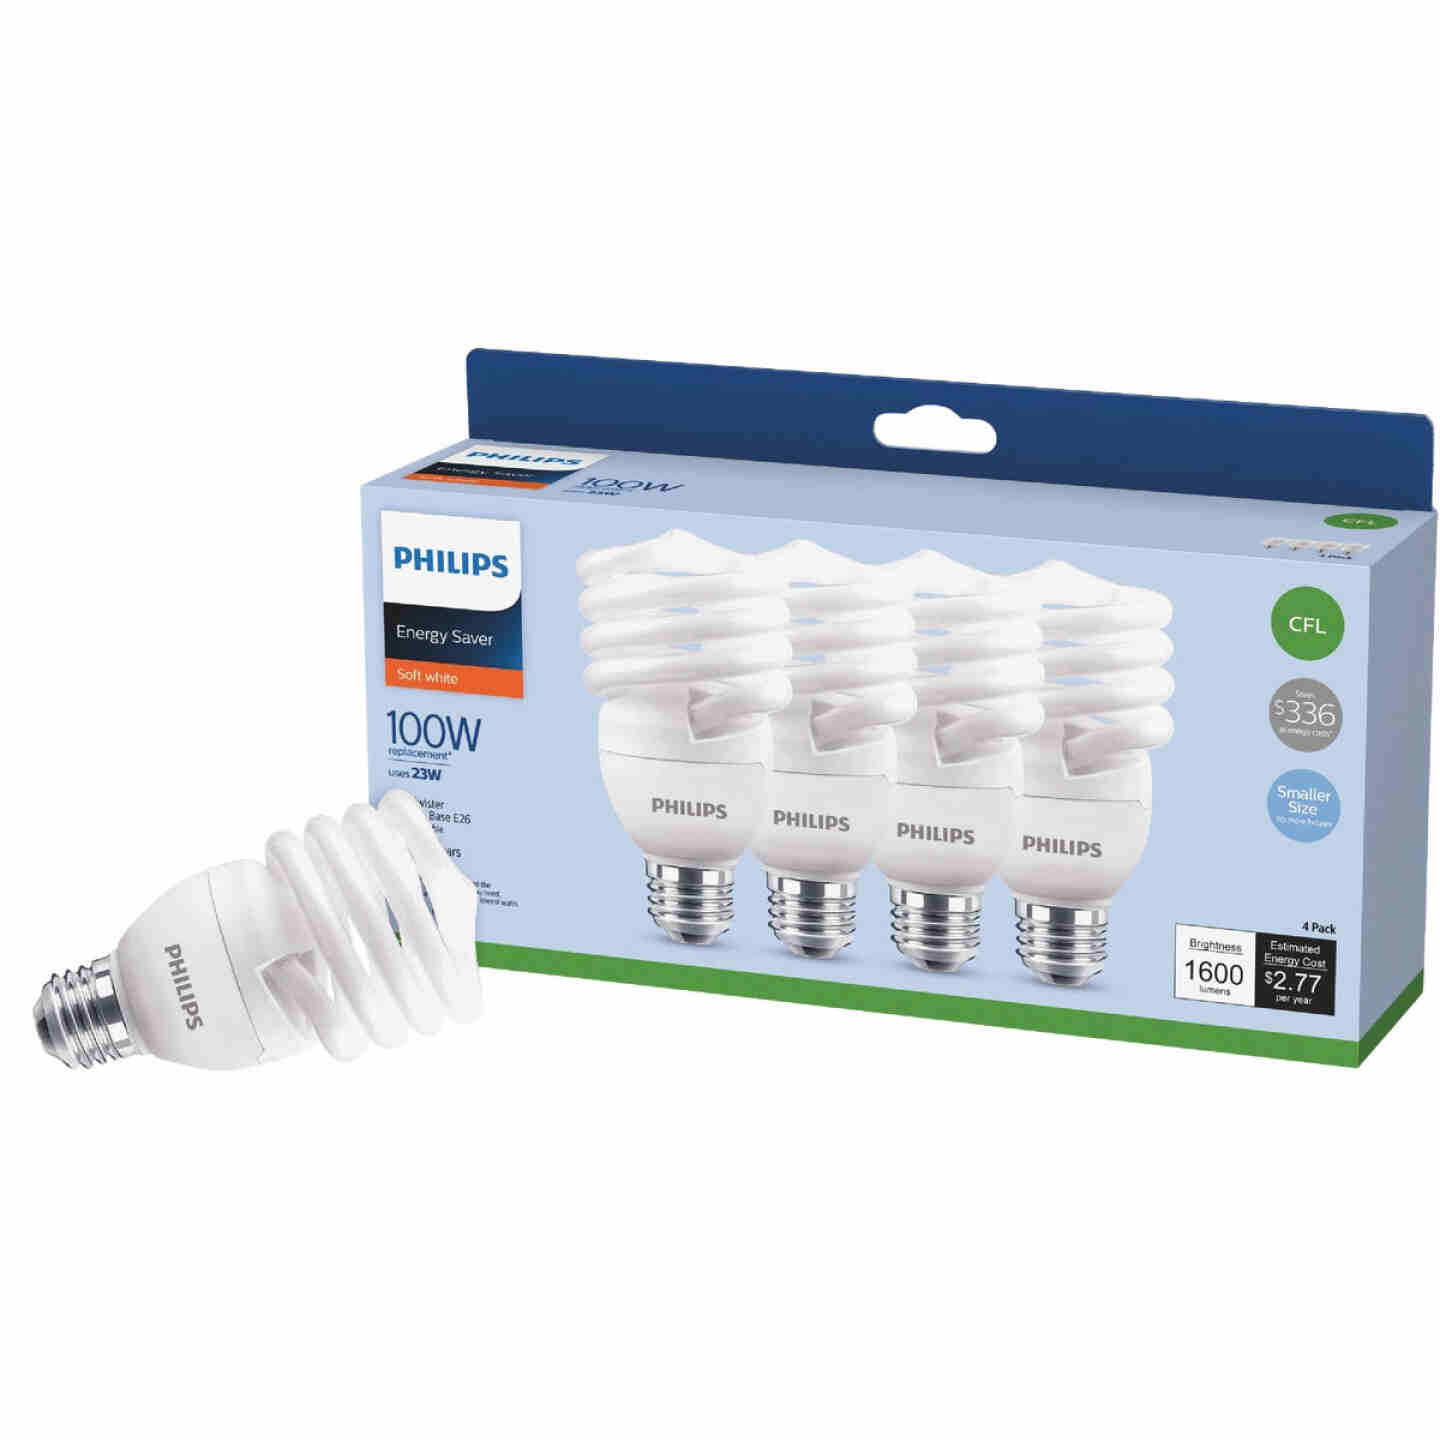 Philips Energy Saver 100W Equivalent Soft White Medium Base T2 Spiral CFL Light Bulb (4-Pack) Image 1